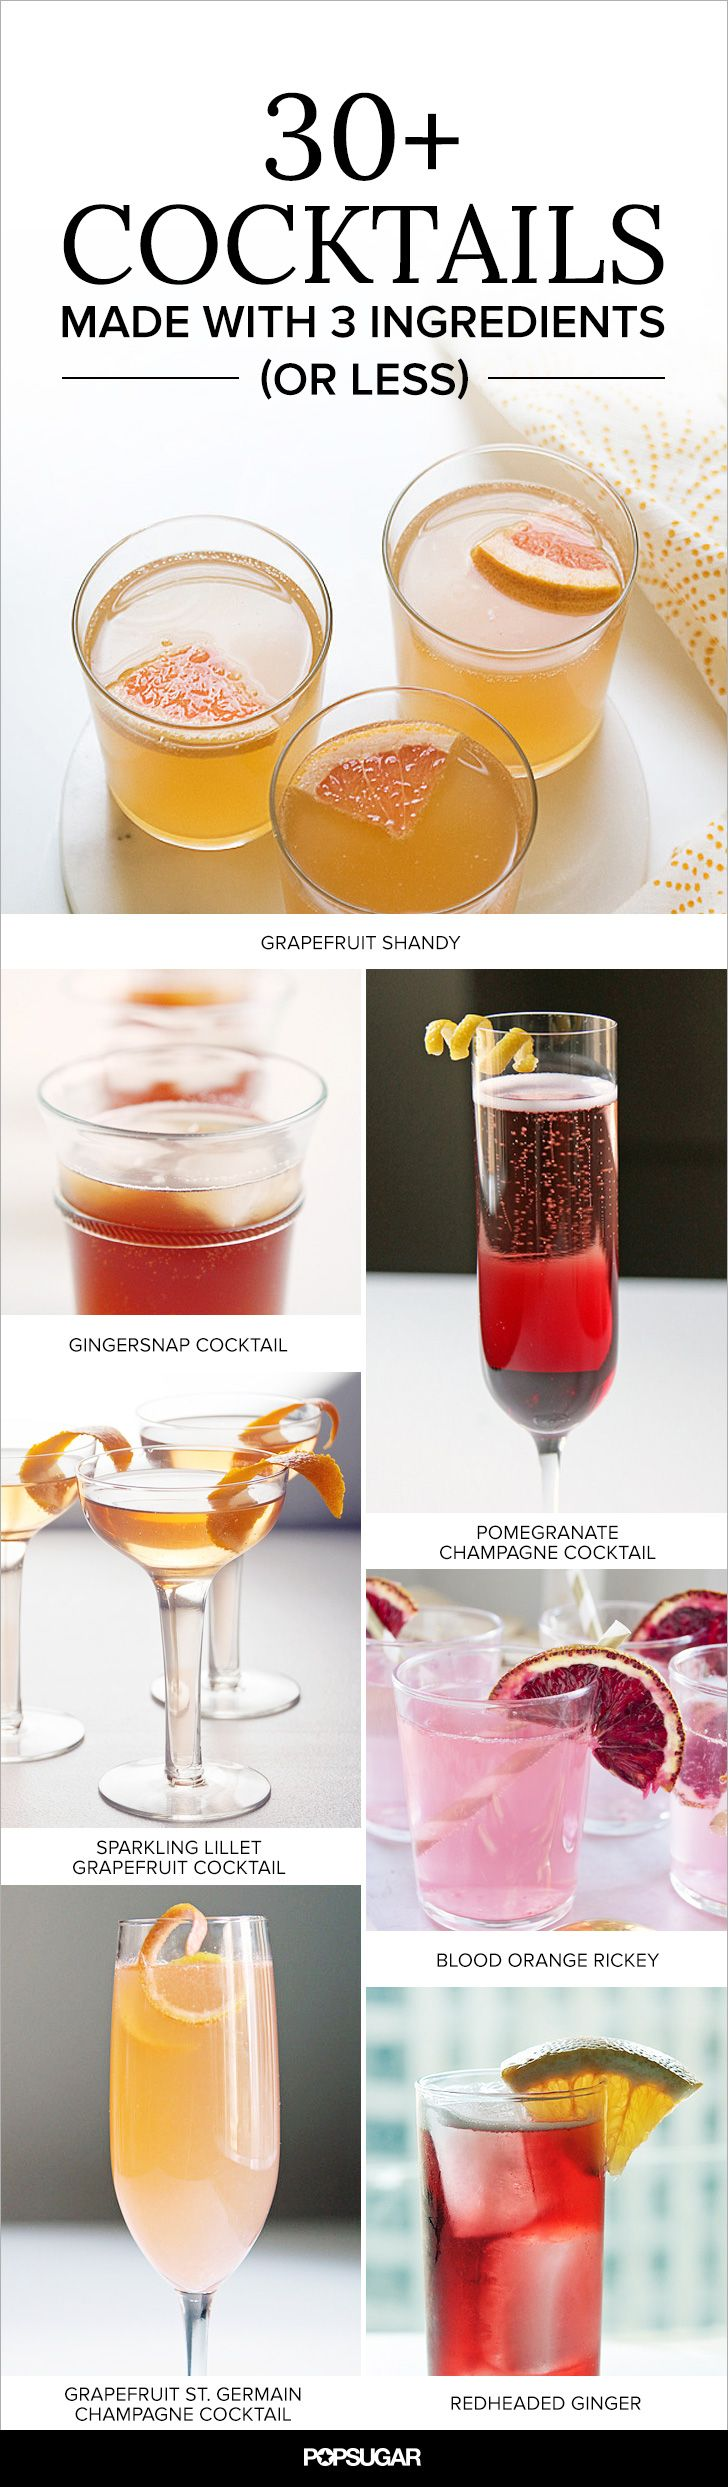 Creative cocktails that are easy to make from @POPSUGARFood